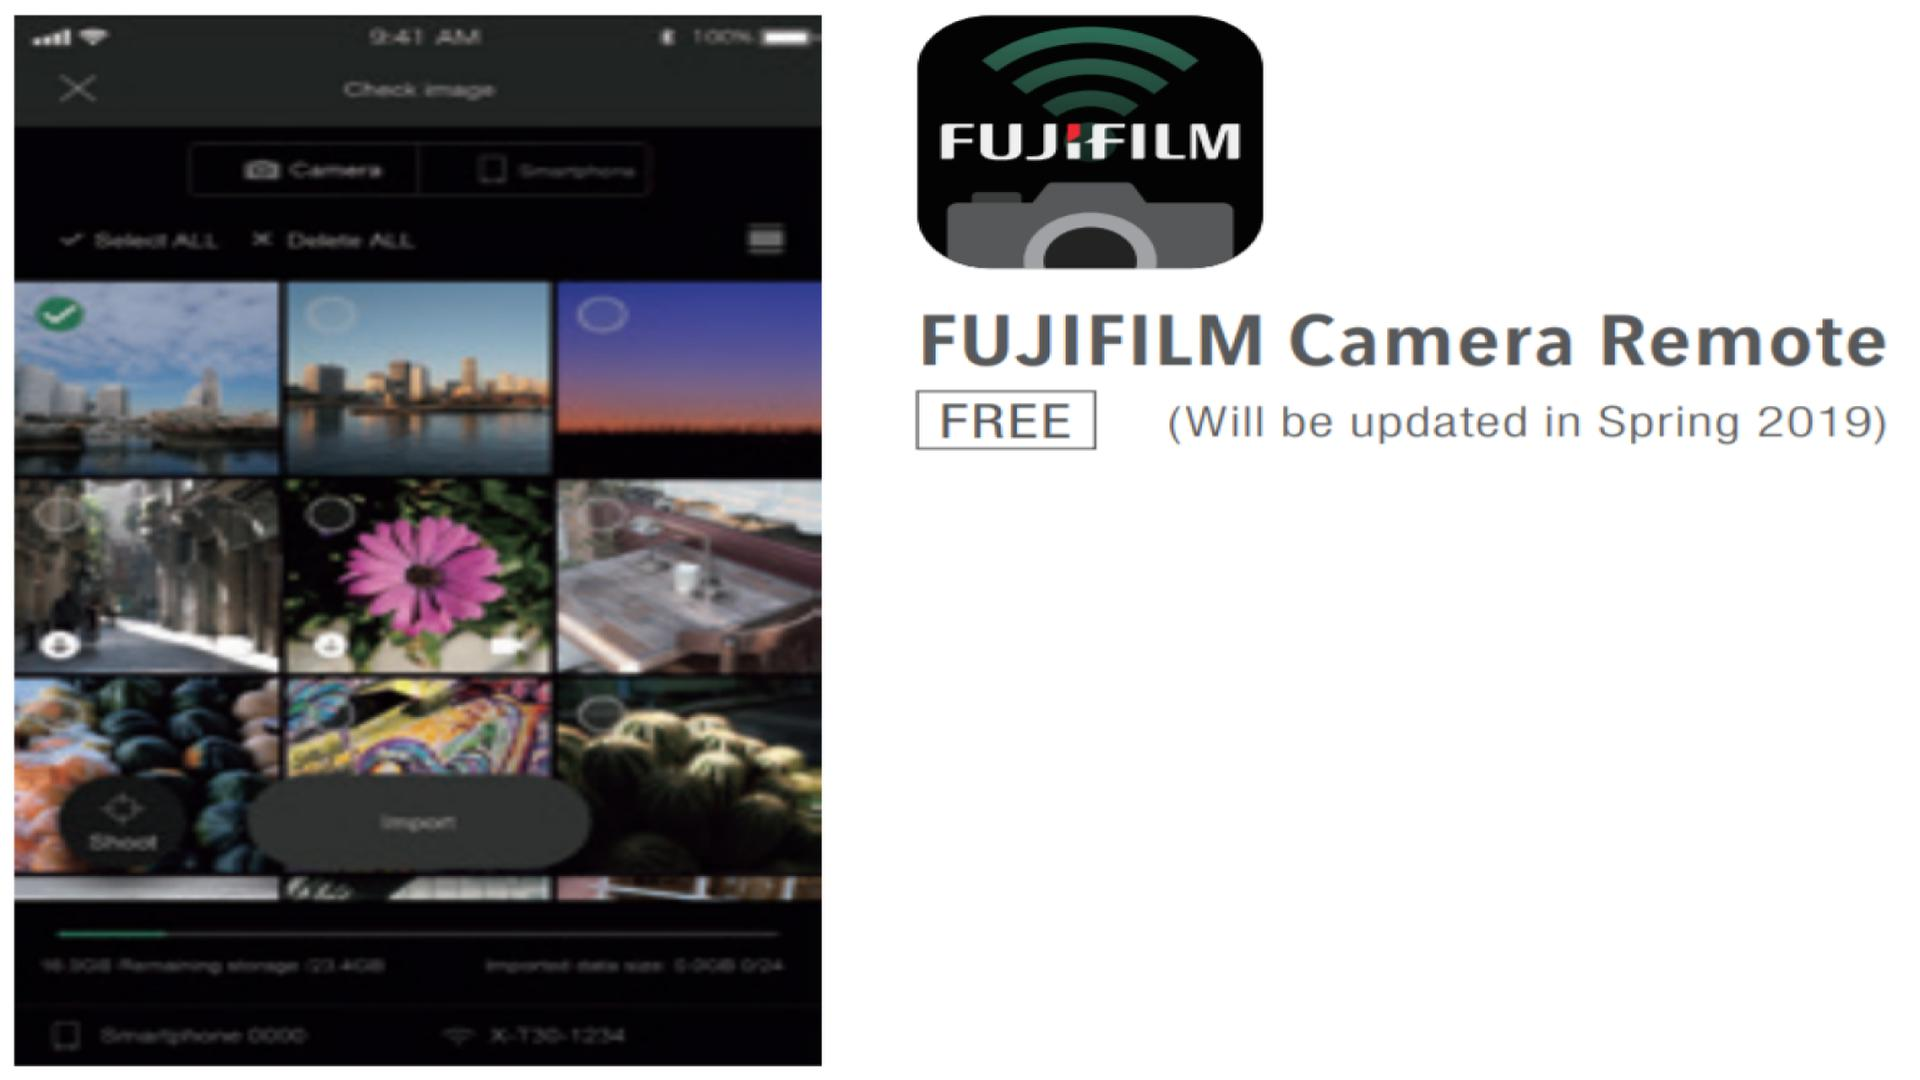 fujifilm-camera-remote-01